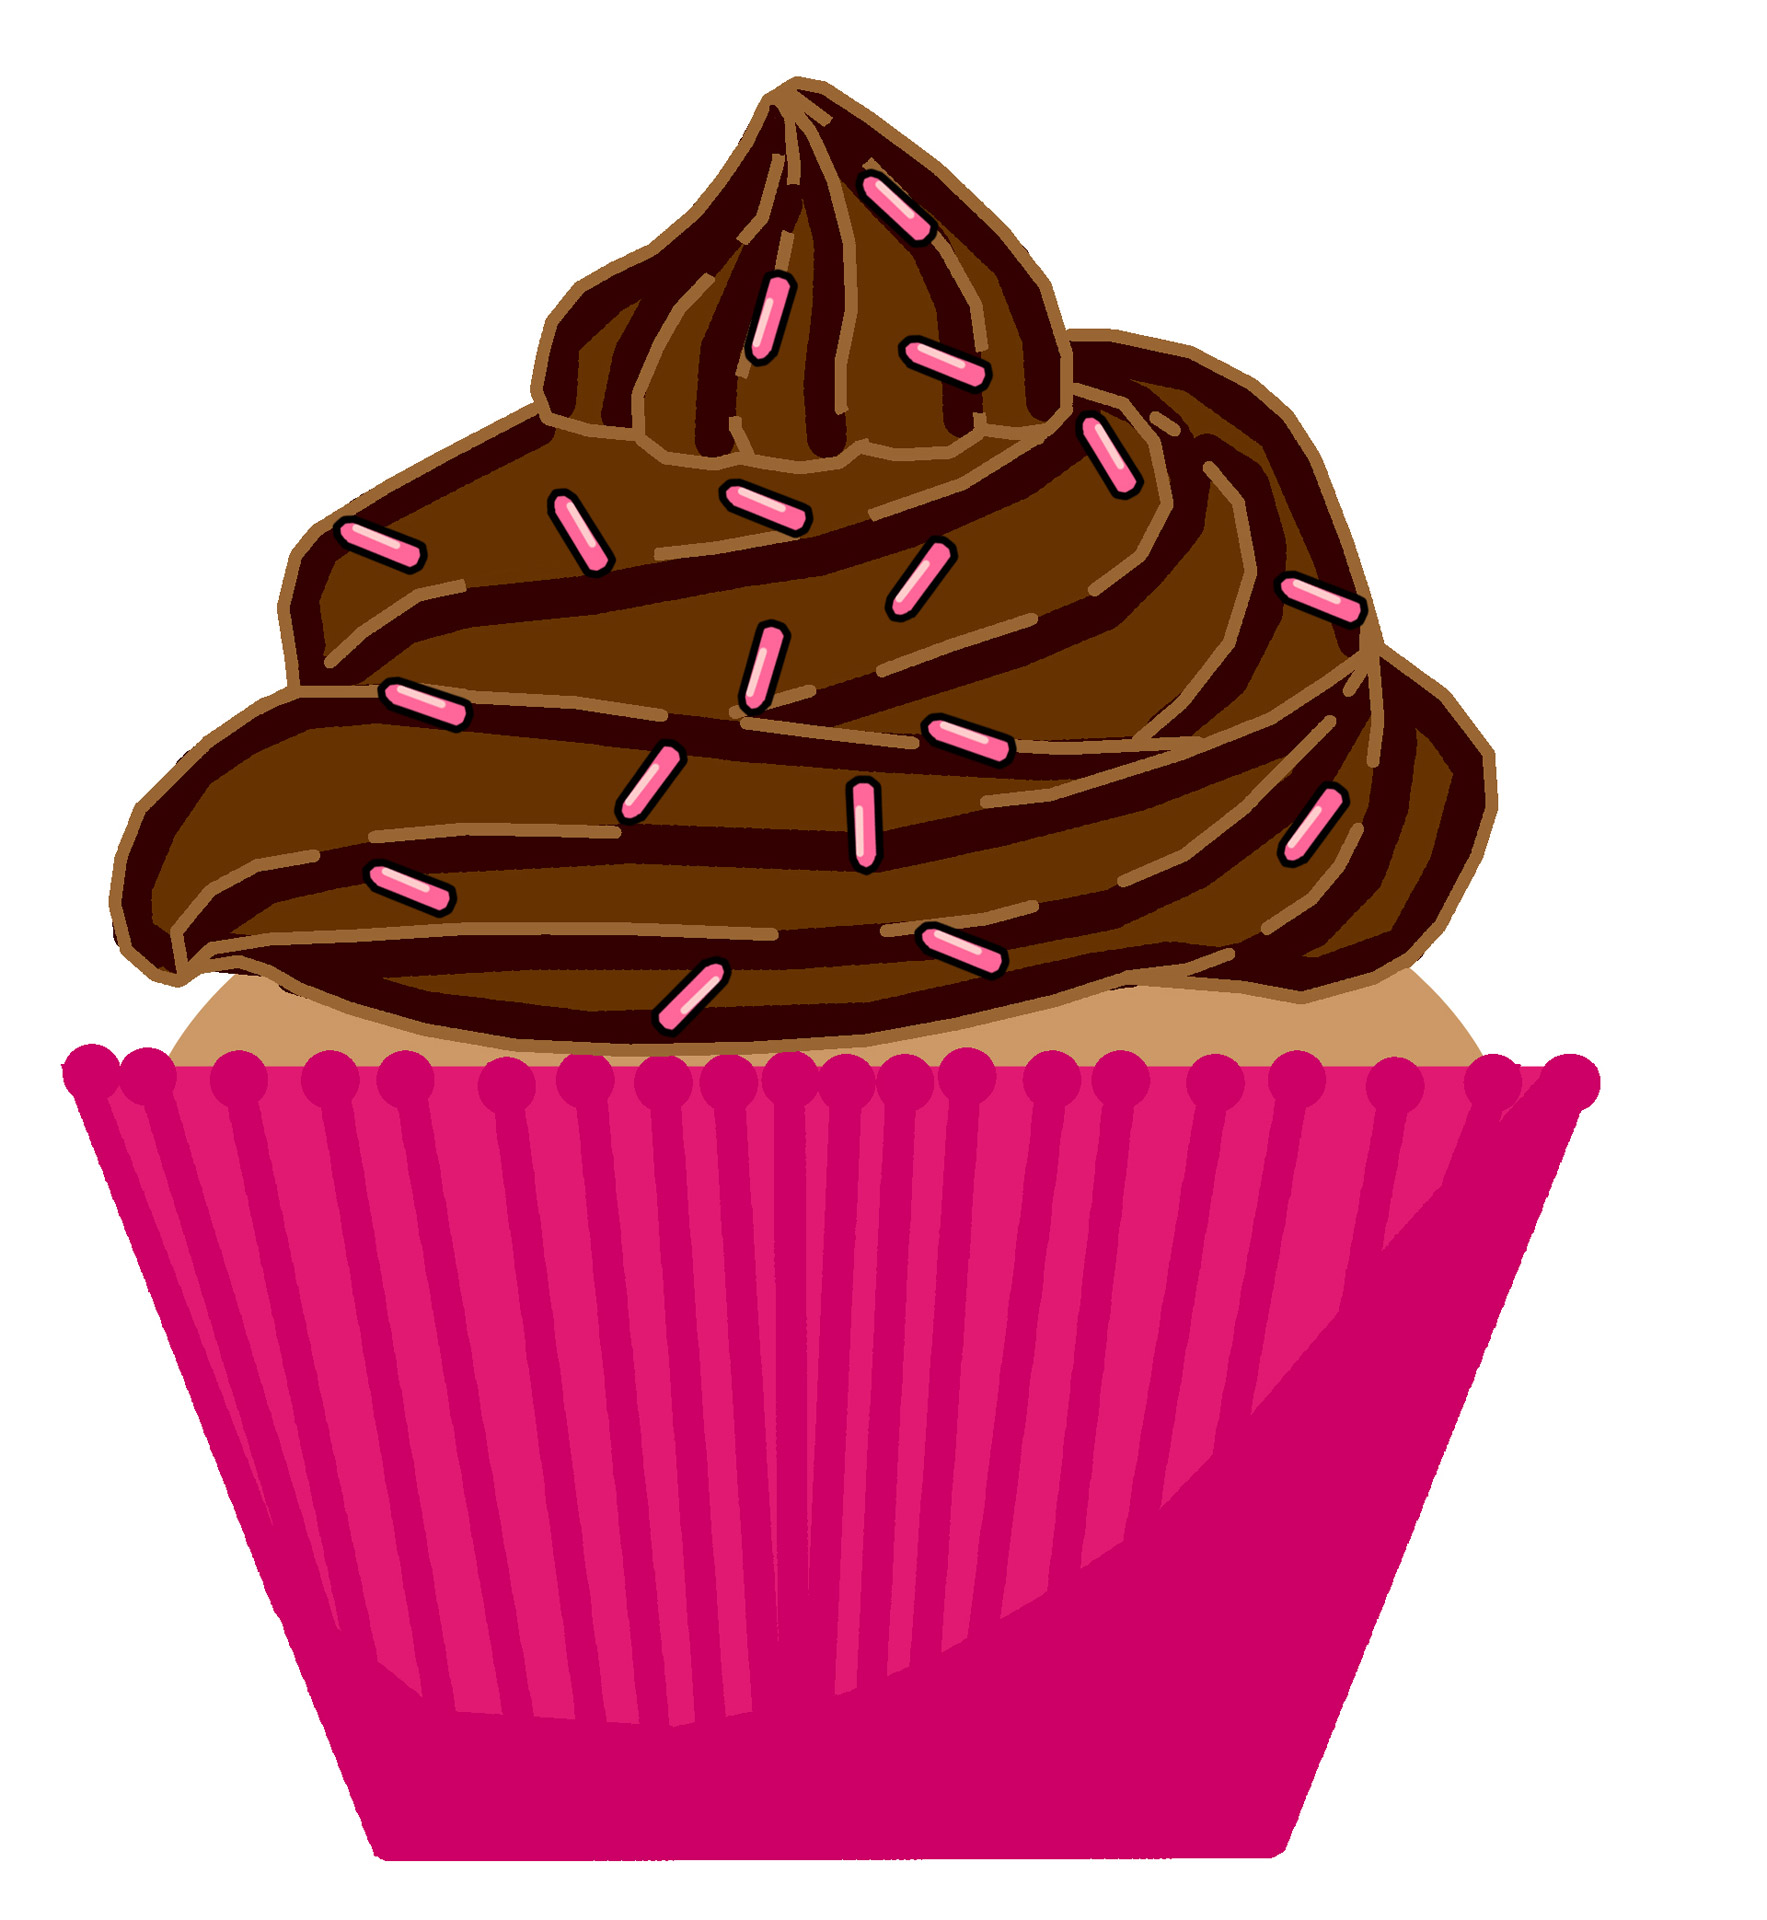 Muffin clipart chocolate cupcake Images Free Clipart Free Clipart